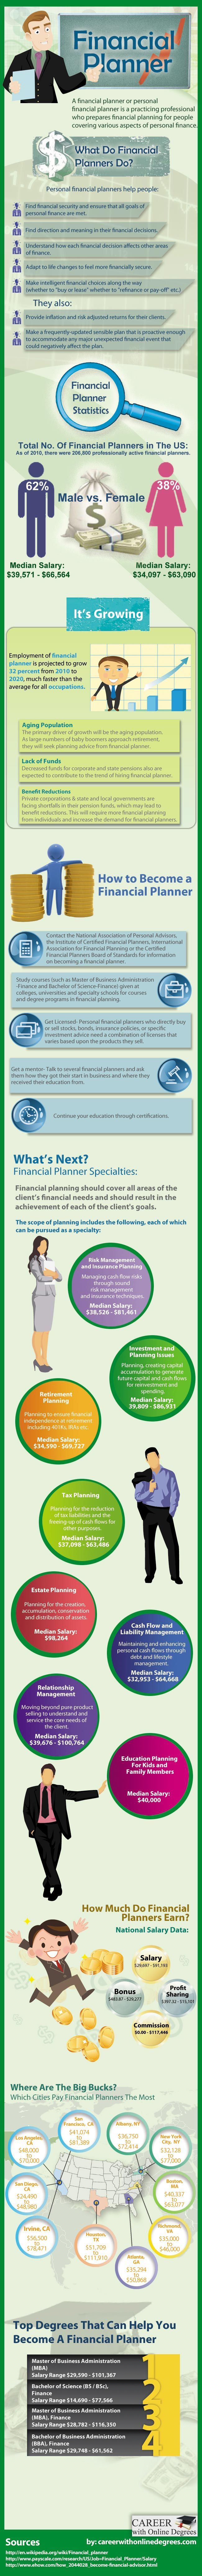 educational requirement salary outlook of a financial planner